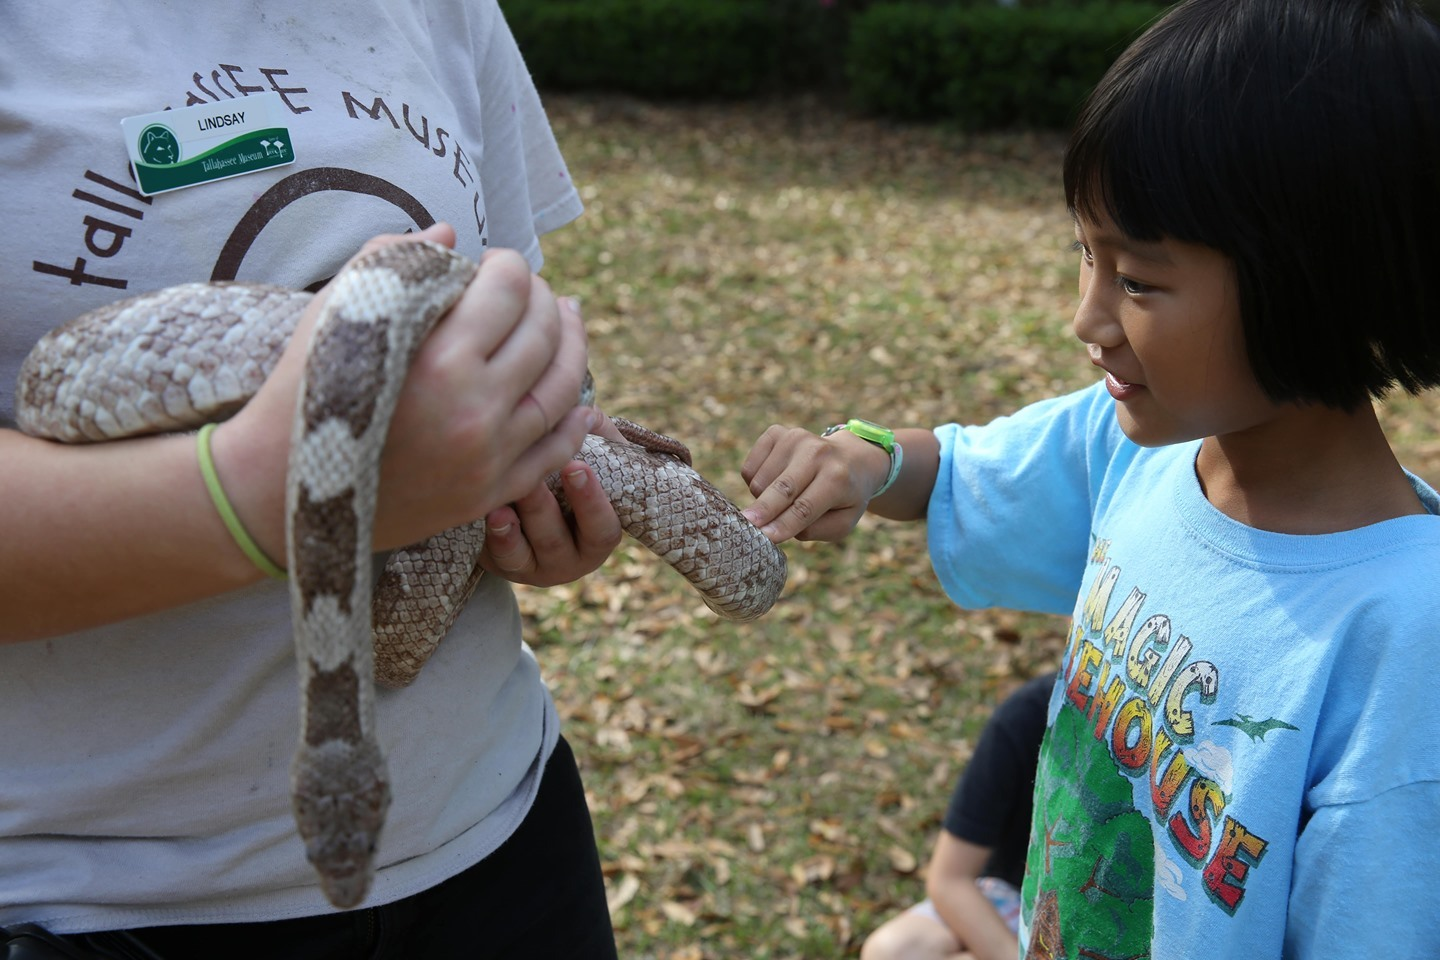 Not only will your campers have fun at the Tallahassee Museum's Summer Camps, but they'll also learn! What could be…